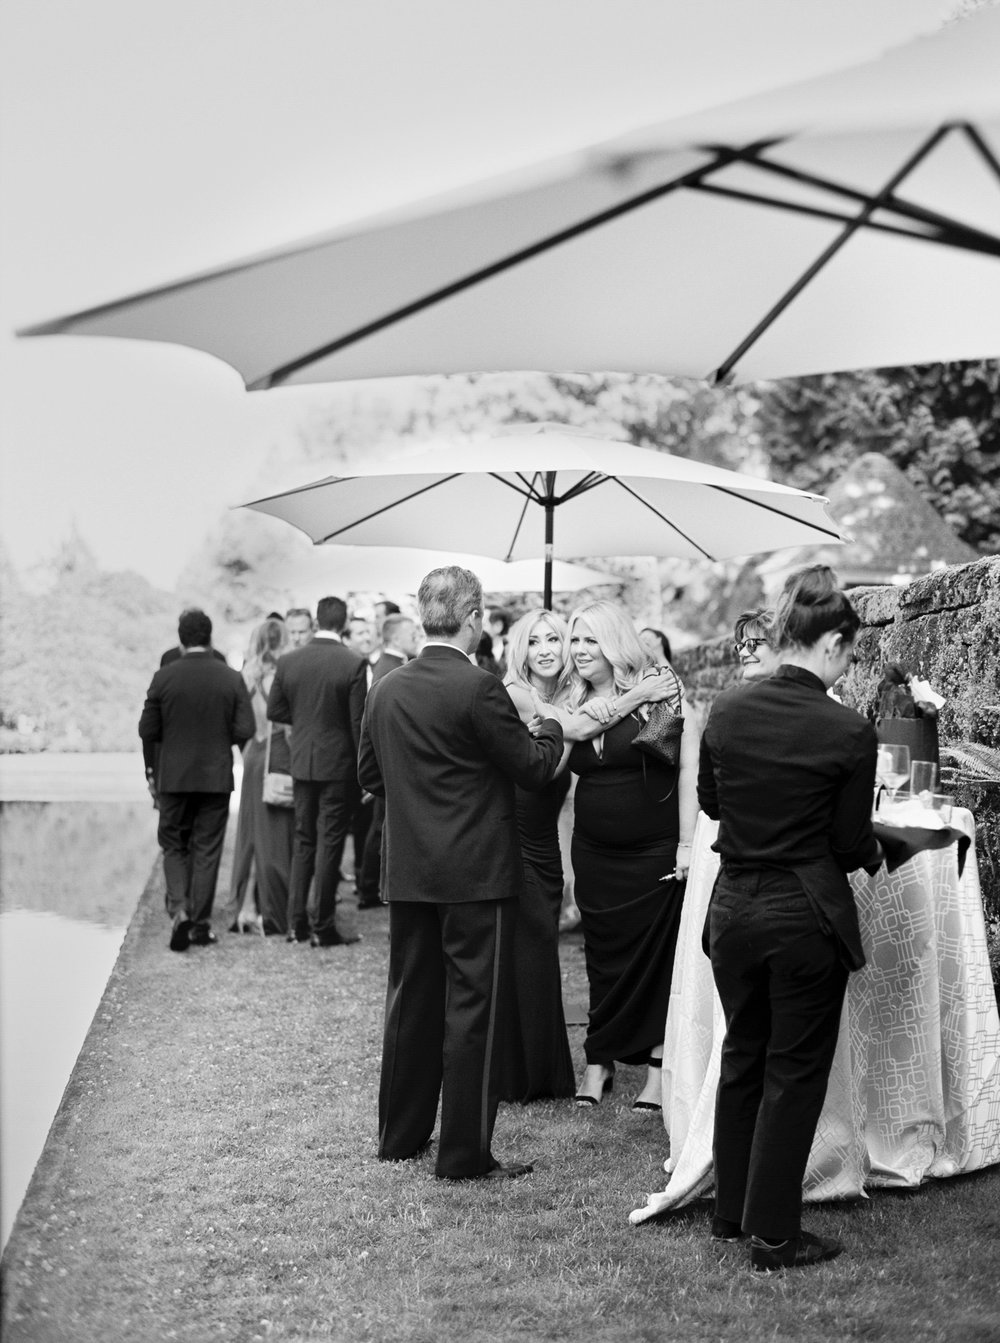 155OutliveCreative_Travel_Photographer_Videographer_Lewis&Clark_Oregon_Elegant_BlackTie_Destination_Wedding.jpg